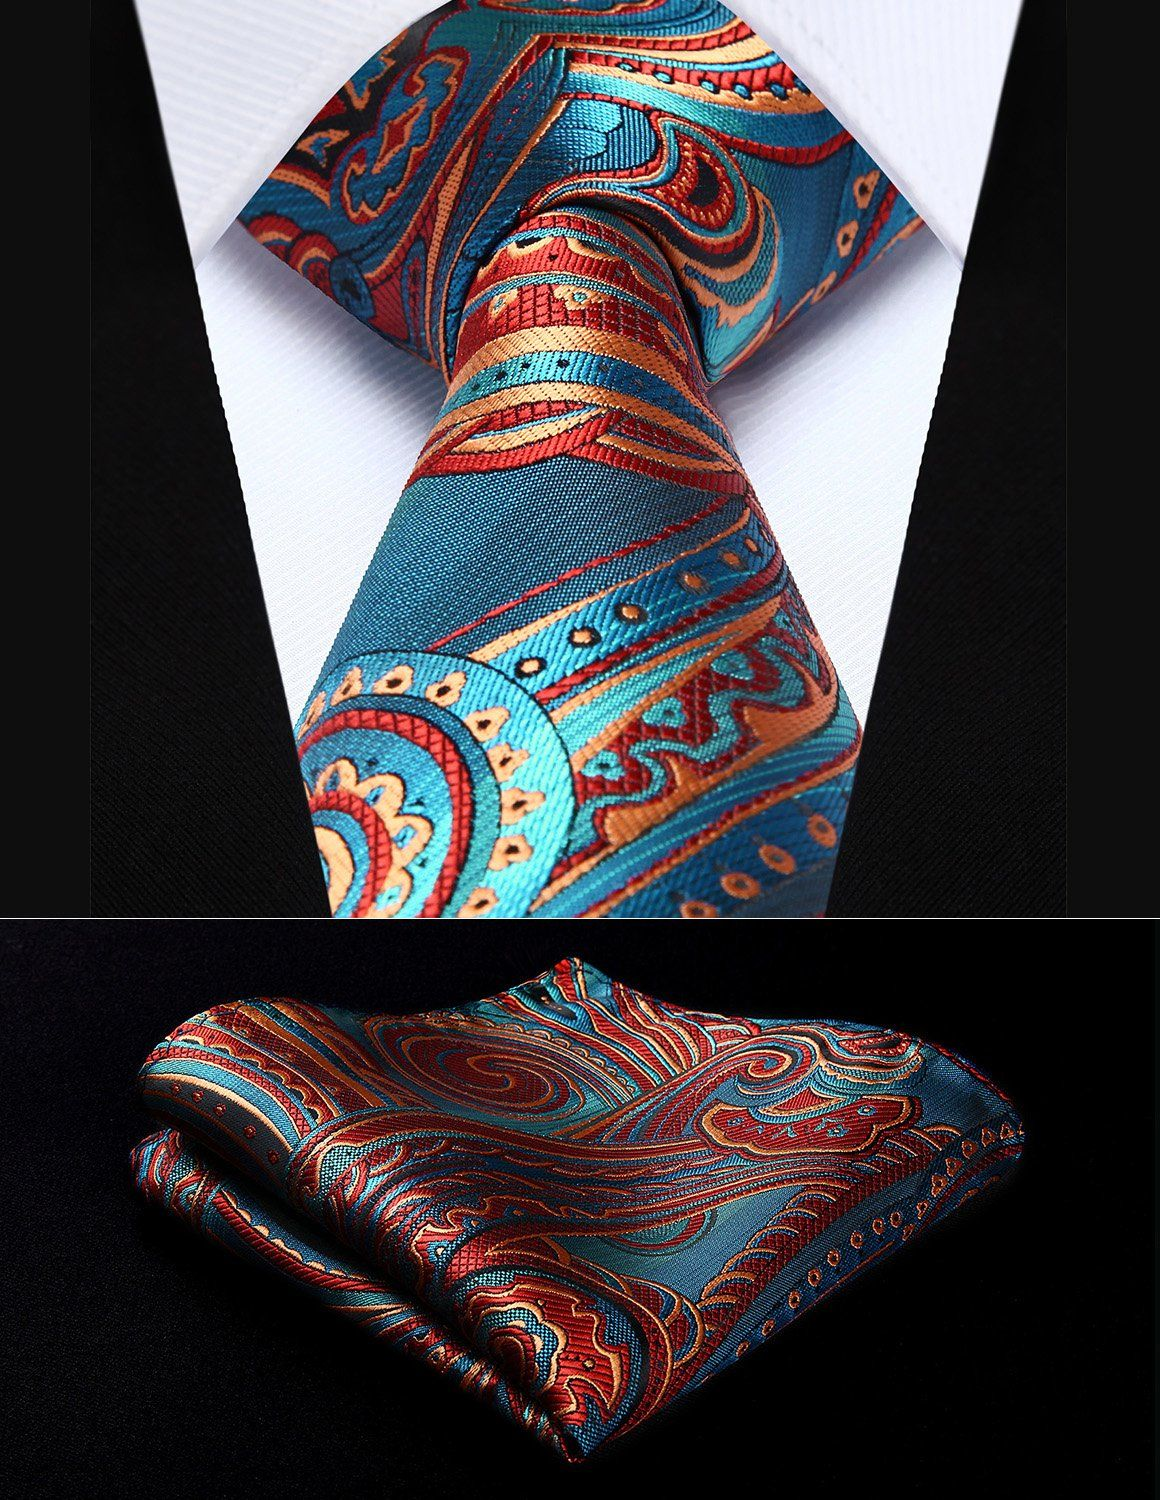 069ecb0fbd86a Party Wedding Classic Pocket Square Tie TP930B8S Blue Burgundy Paisley 3.4